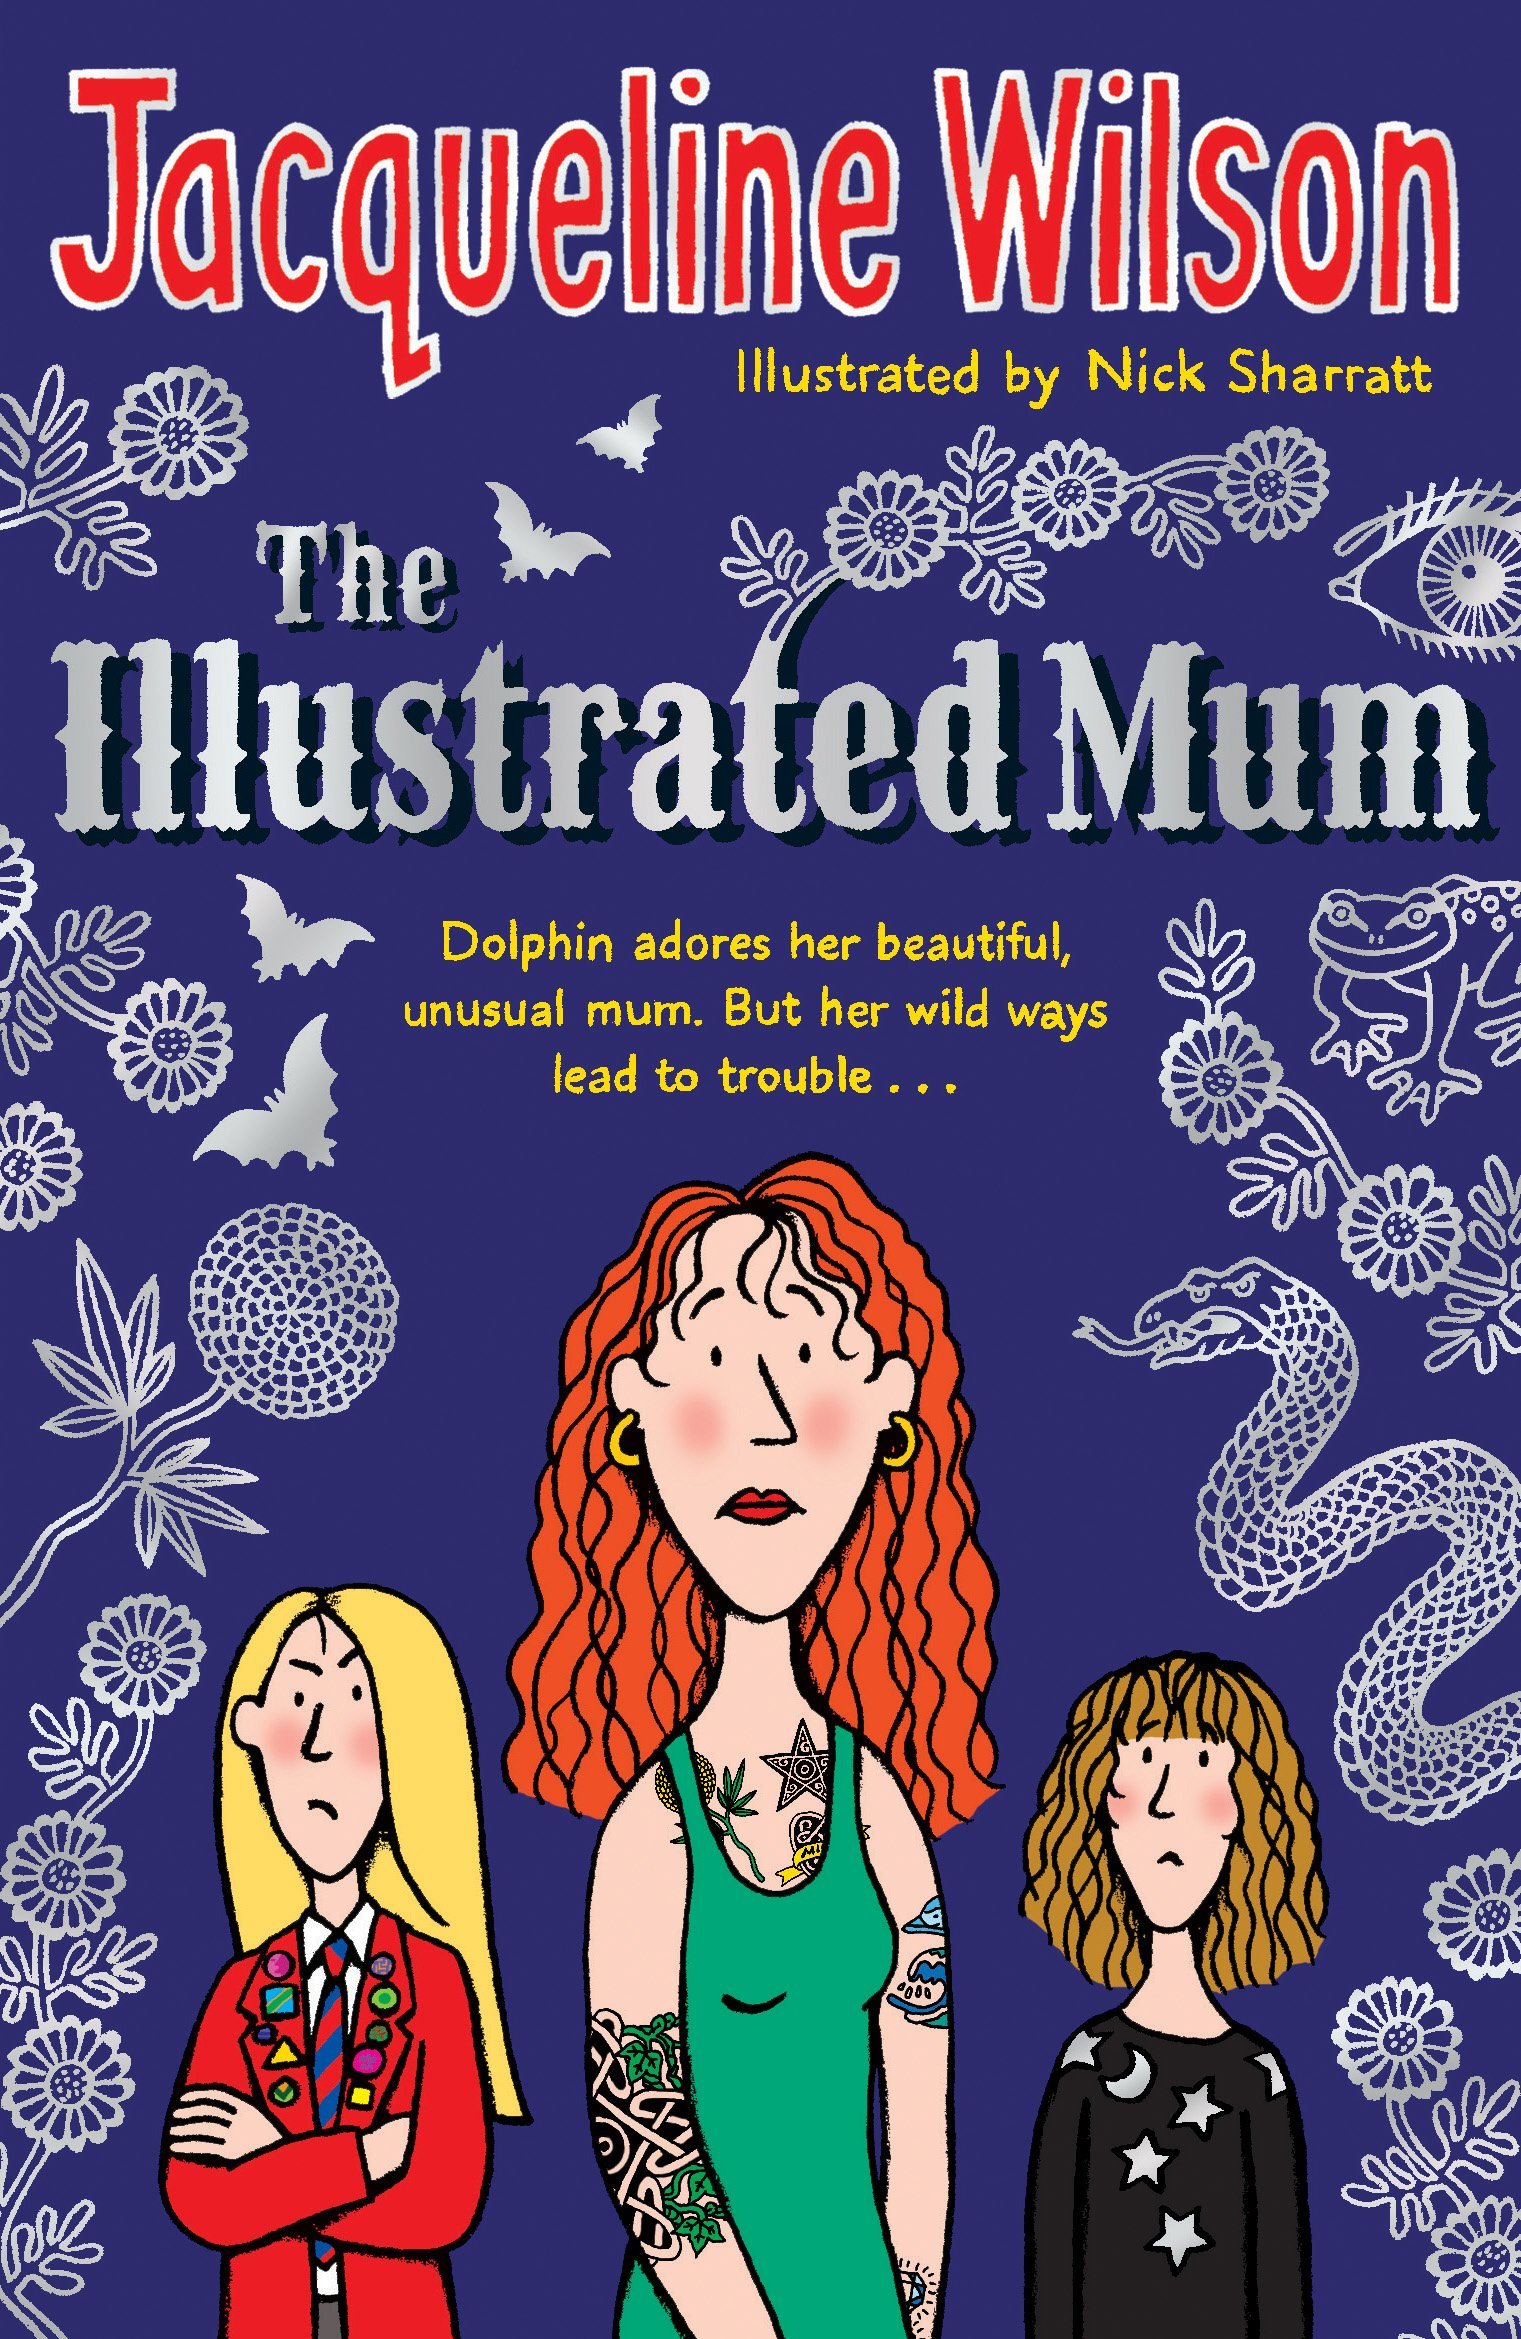 The Illustrated Mum written by Jacqueline Wilson illustrated by Nick Sharratt